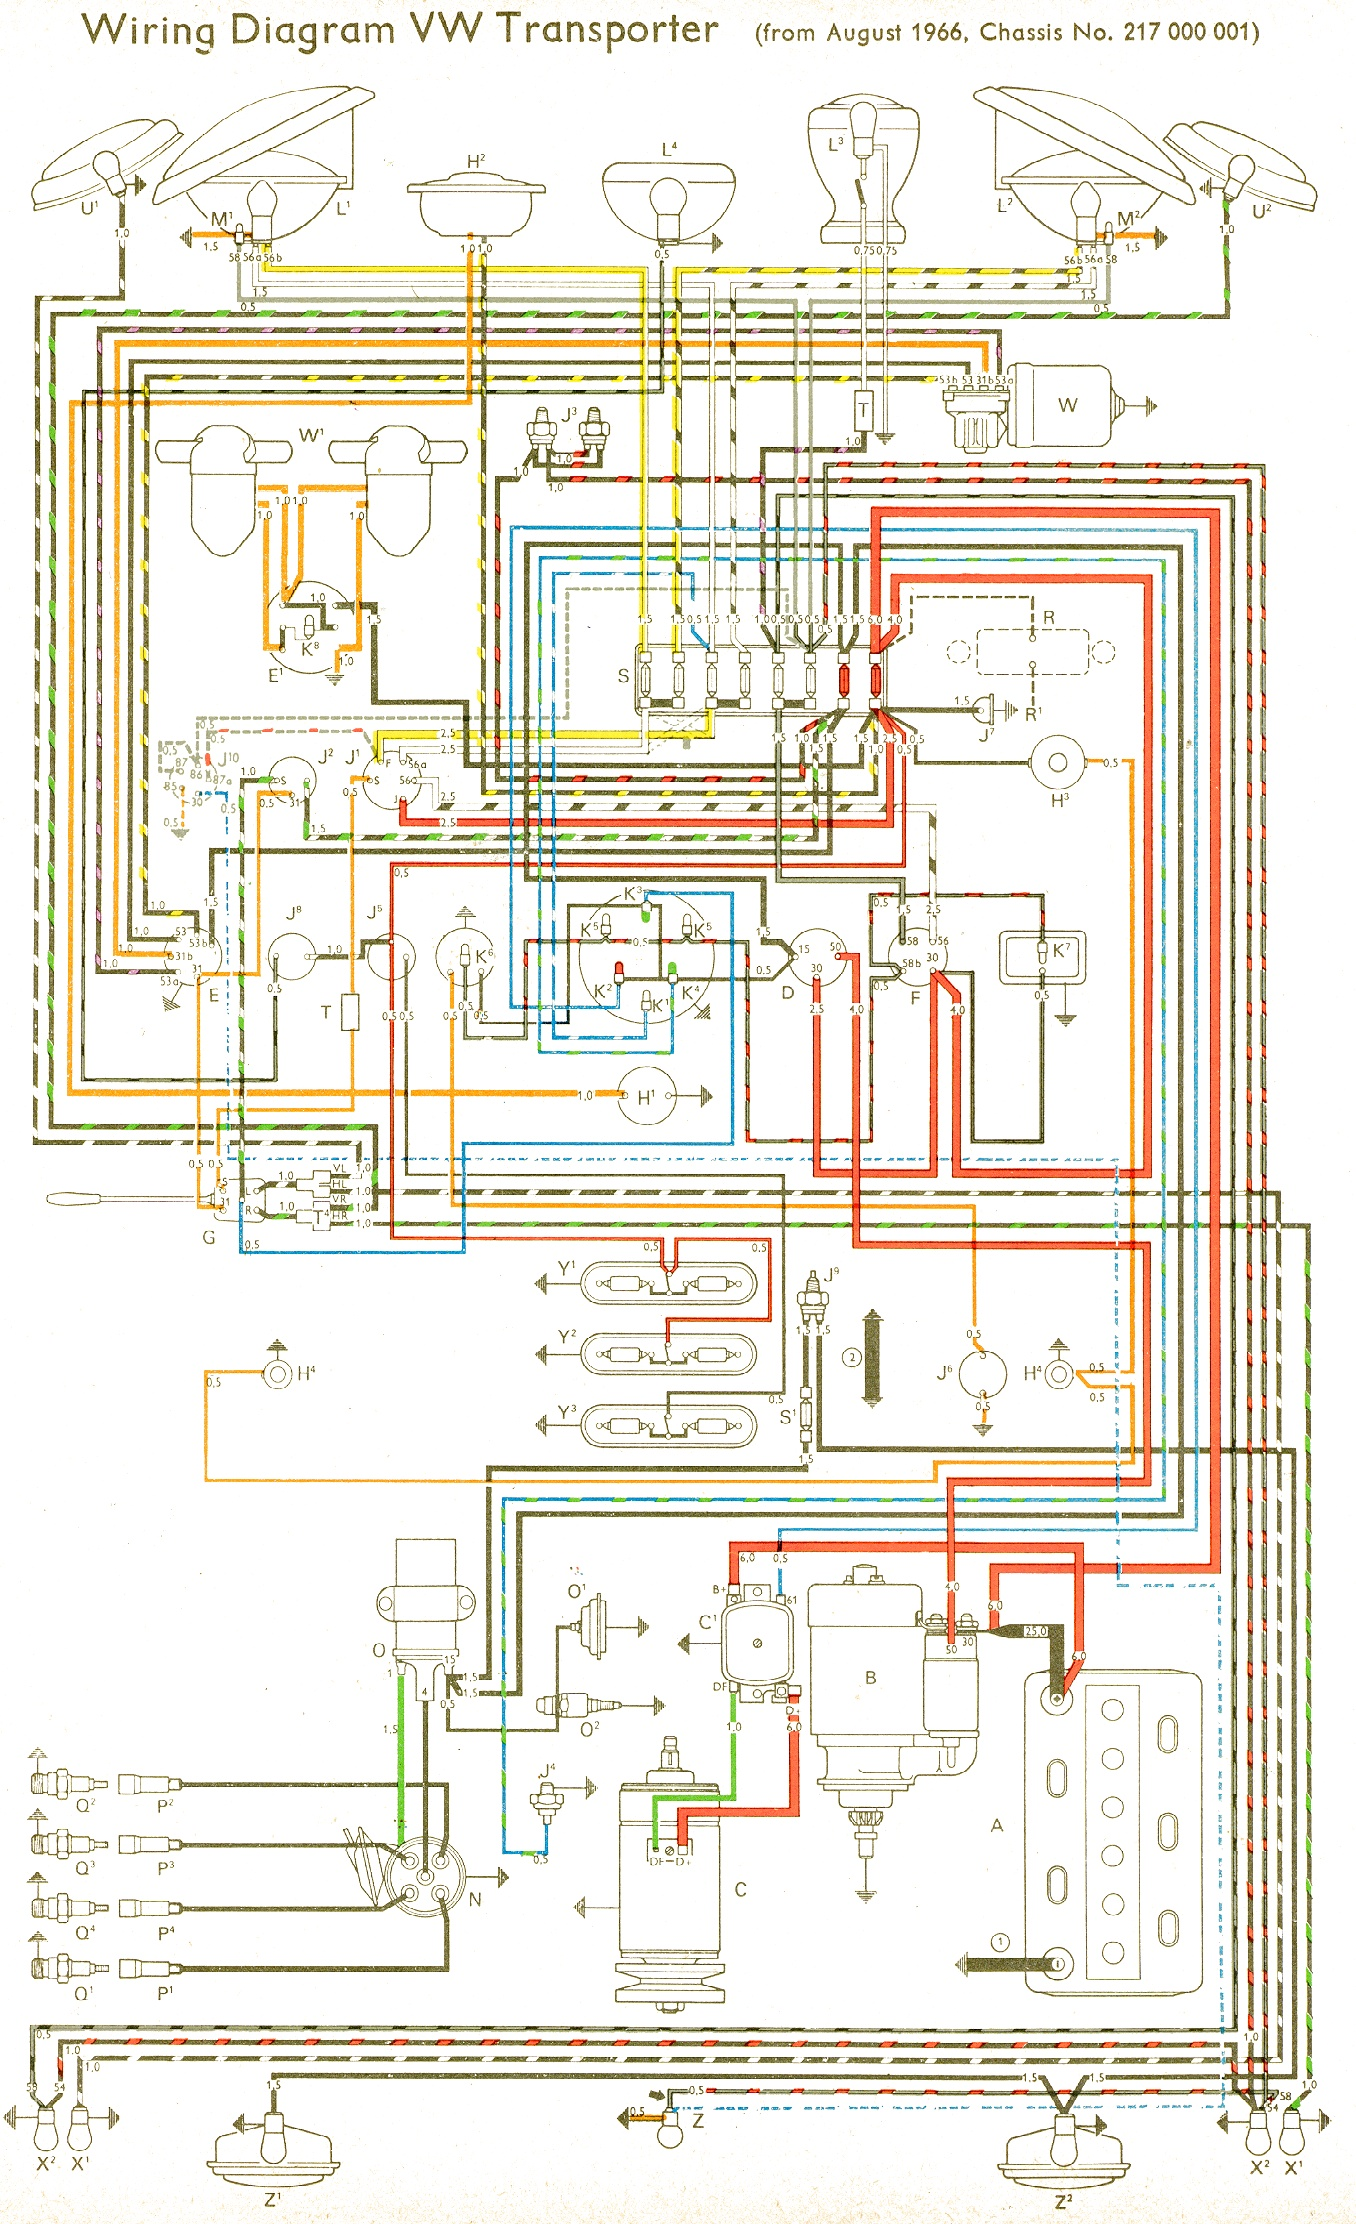 vintage bus wire diagram download wiring diagram 2003 Saturn L200 Fuse Box vintagebus com vw bus (and other) wiring diagramsvintage bus wire diagram 4